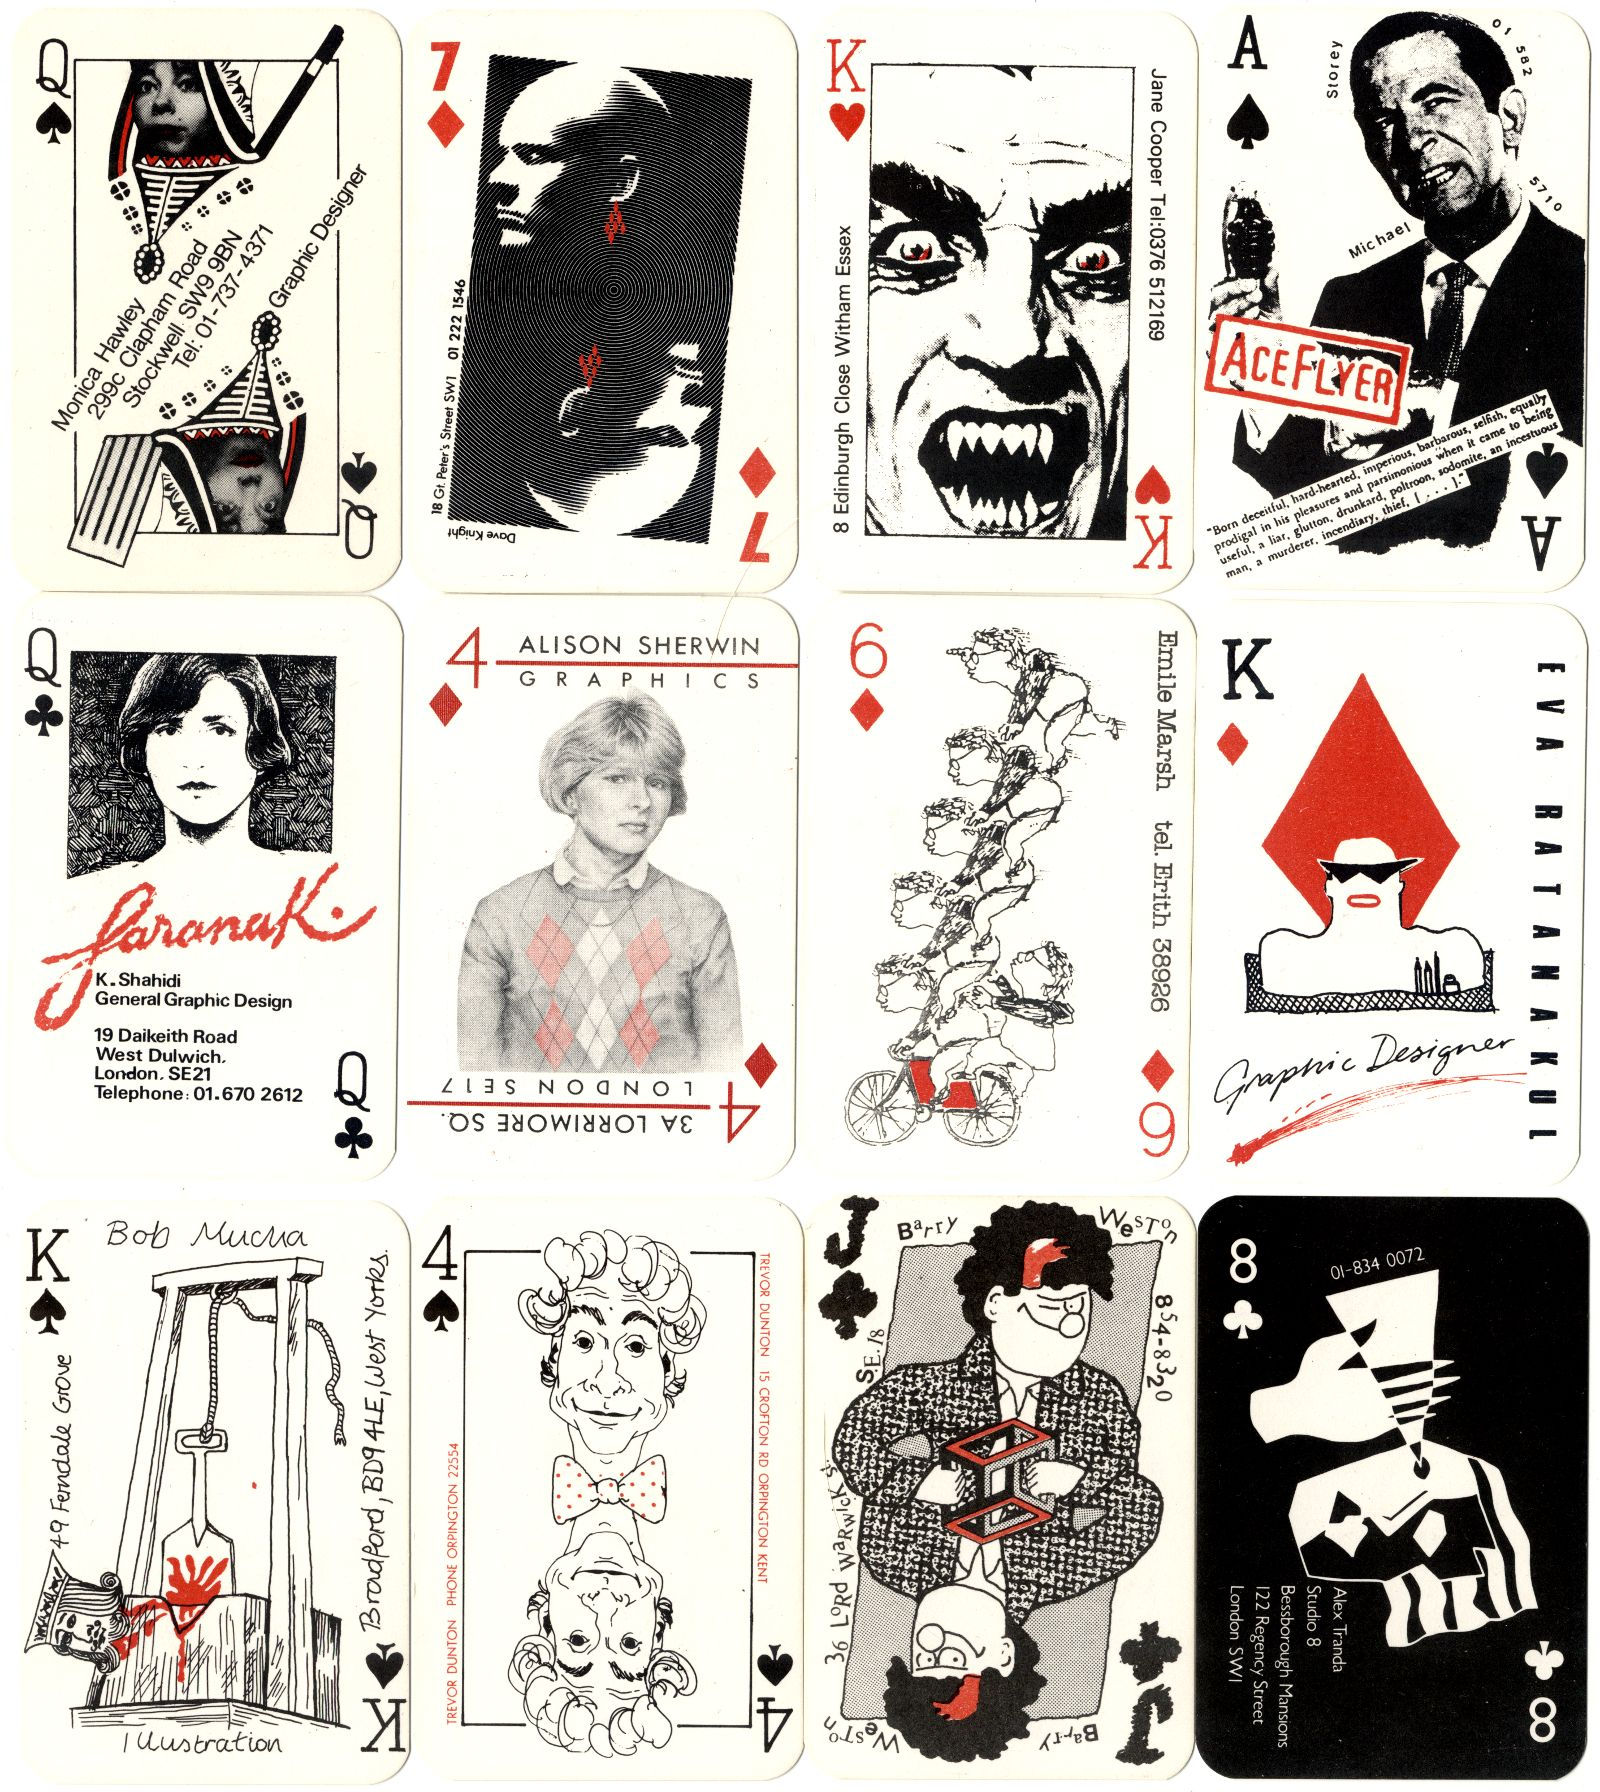 The London College of Printing '52 Club' Designers and Artists playing cards, 1984